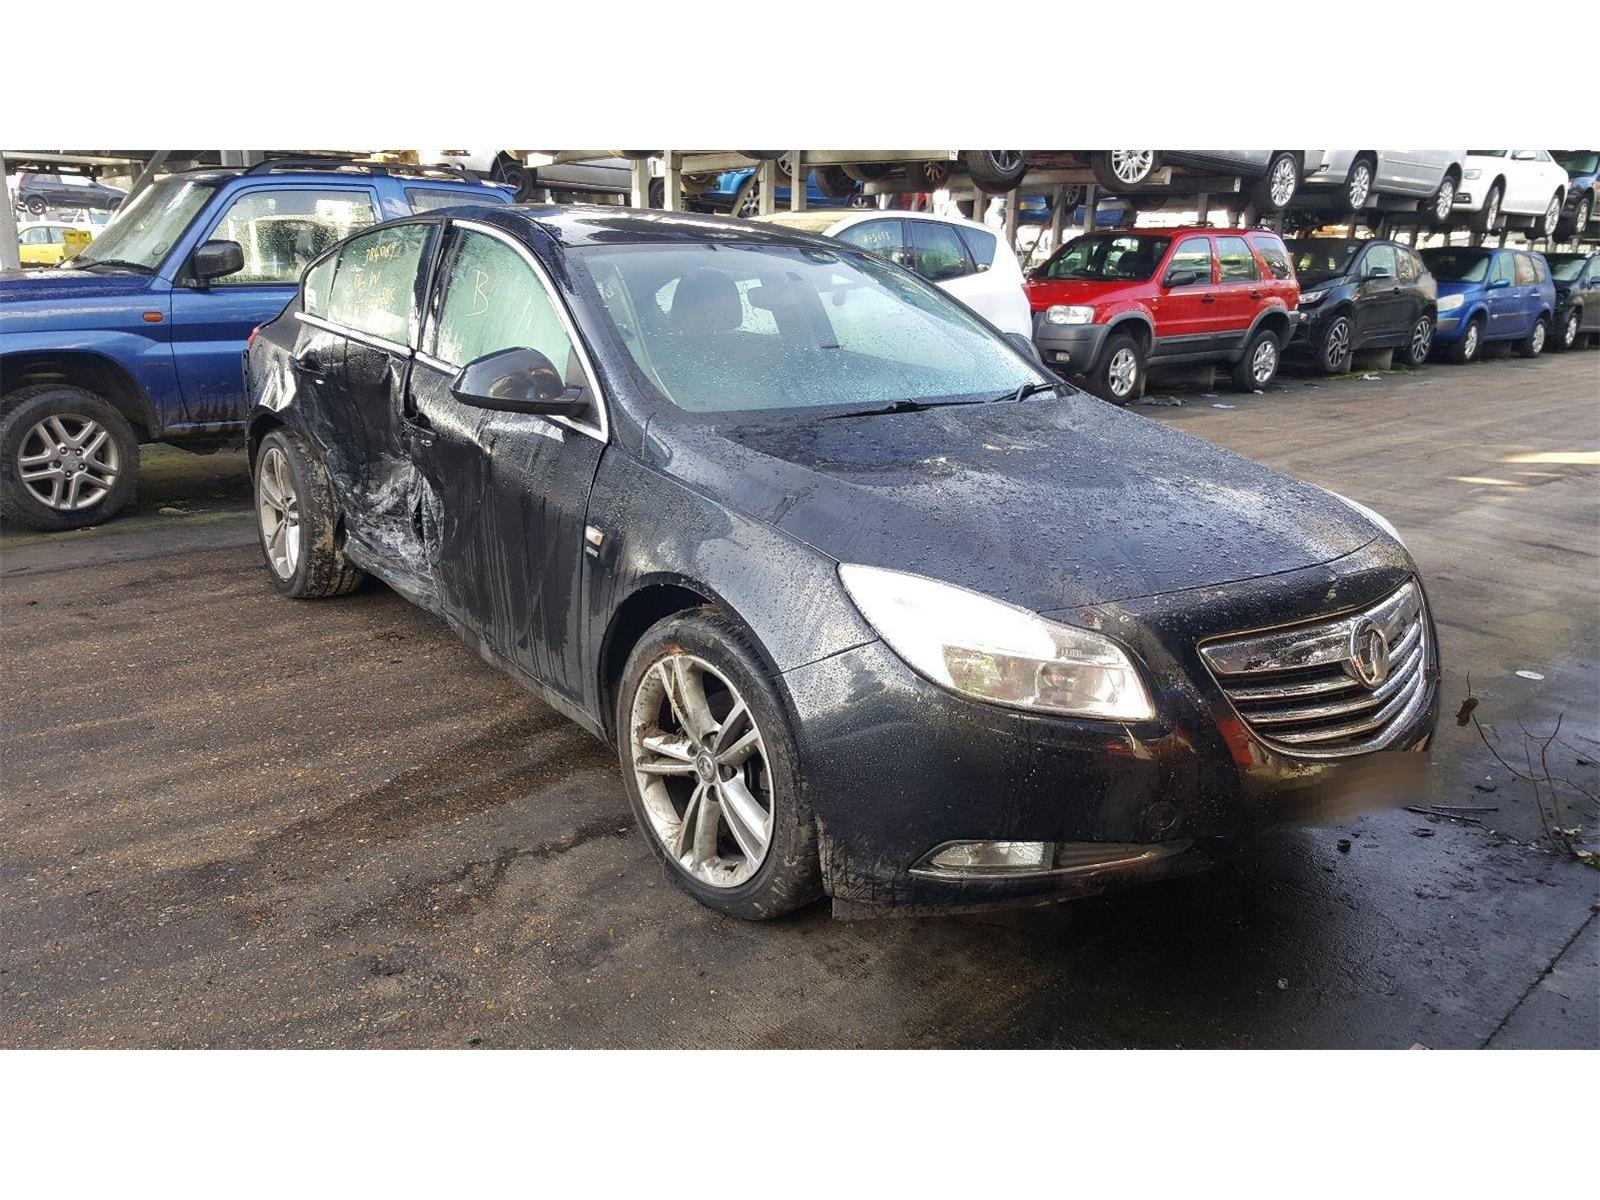 Vauxhall Insignia 2009 To 2013 Sri 5 Door Hatchback Scrap Wiring Loom Salvage Car For Sale Auction Silverlake Autoparts